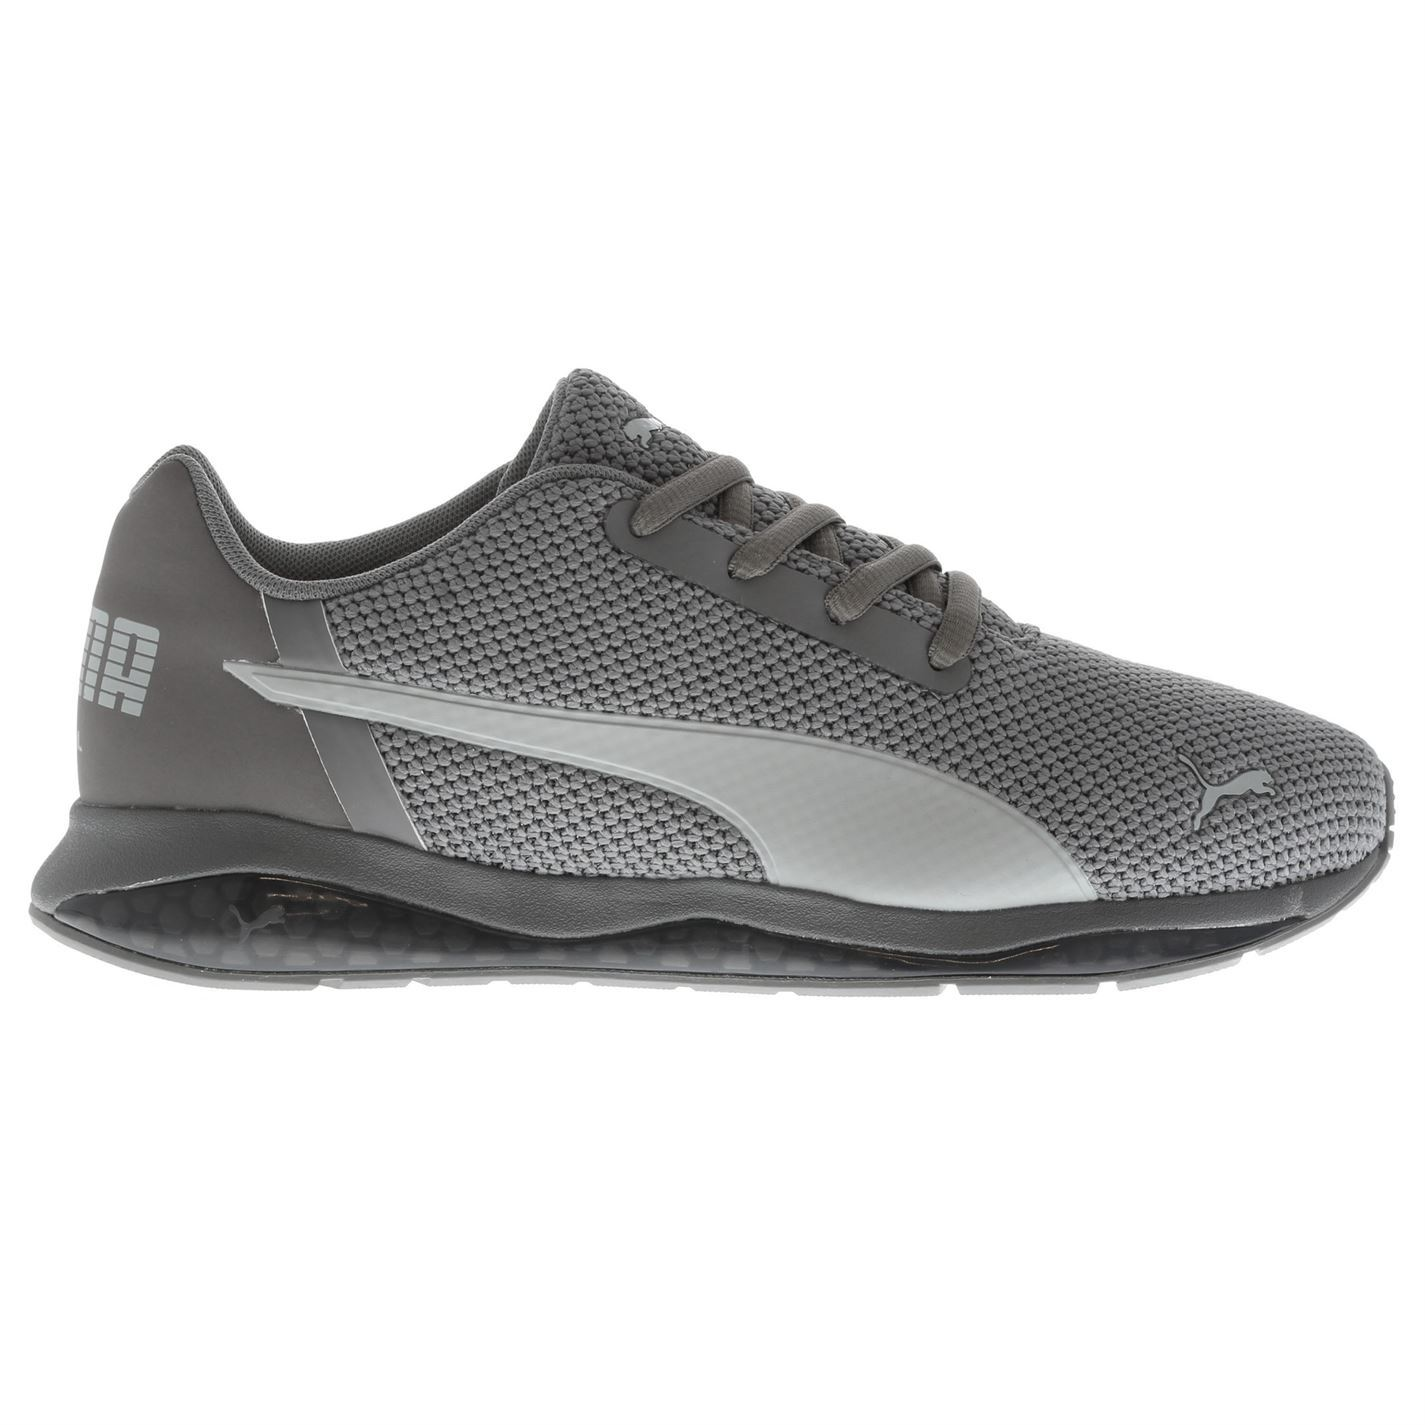 Details about Puma Cell Ultimate Trainers Mens Grey Sports Shoes Sneakers